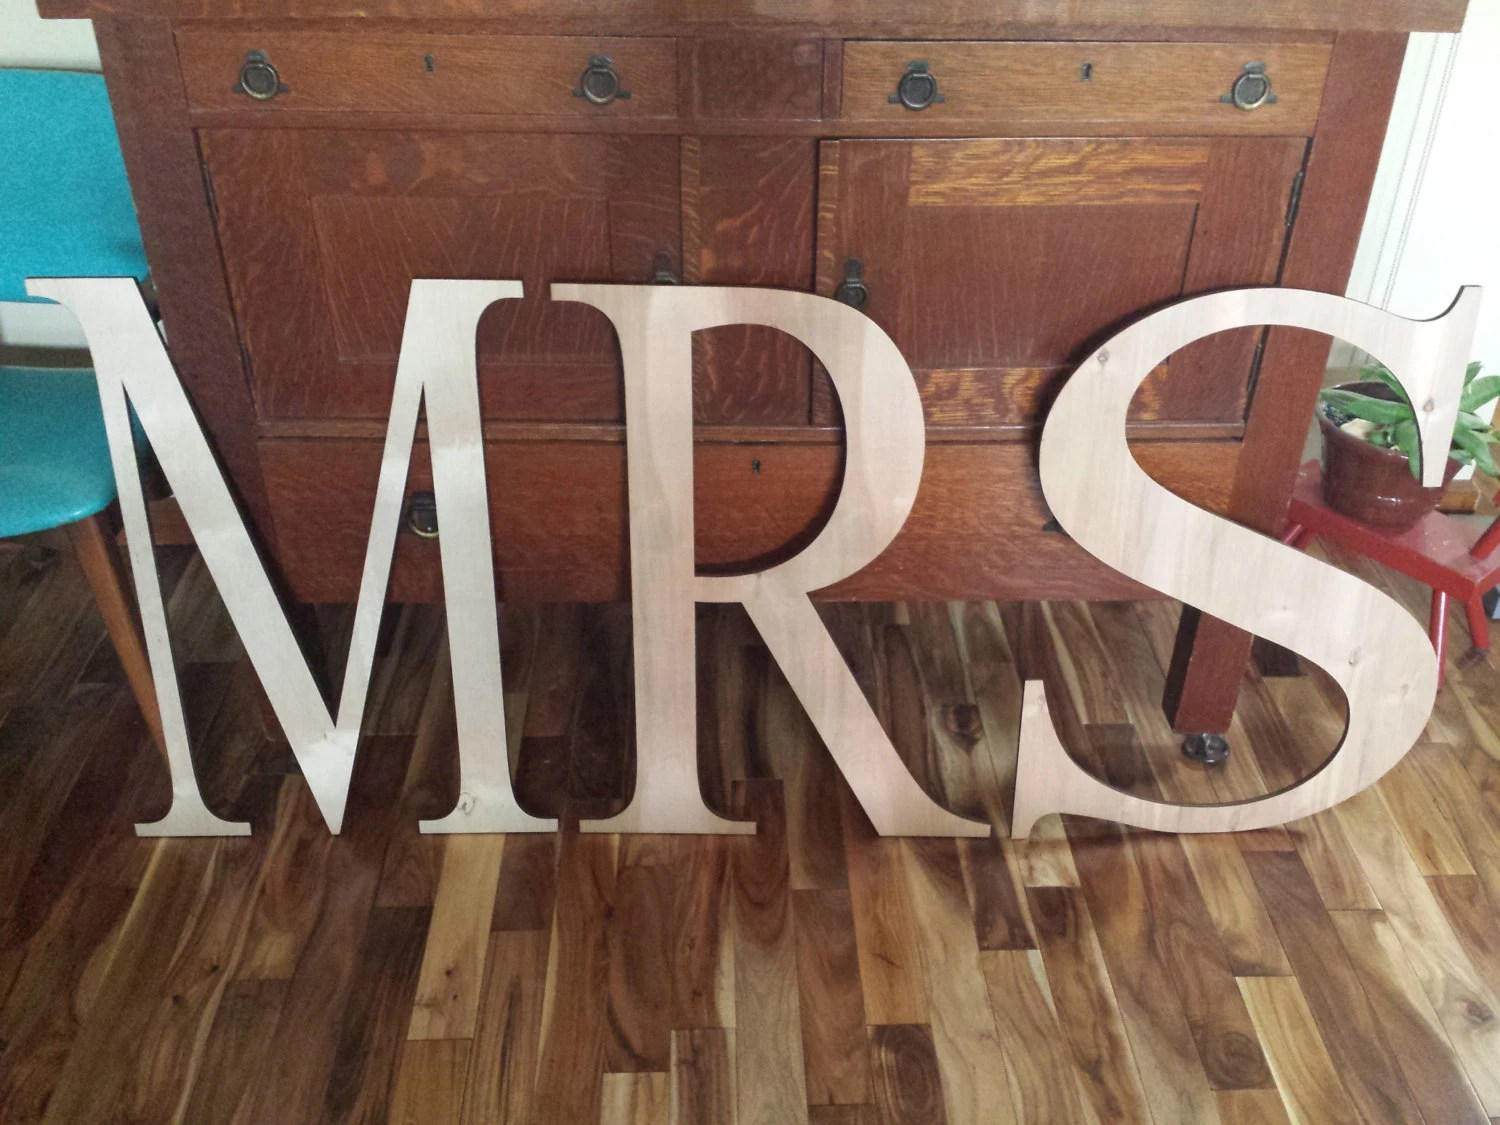 Wedding Decor Wood Letters Large Letters Mr & Mrs By RayMels